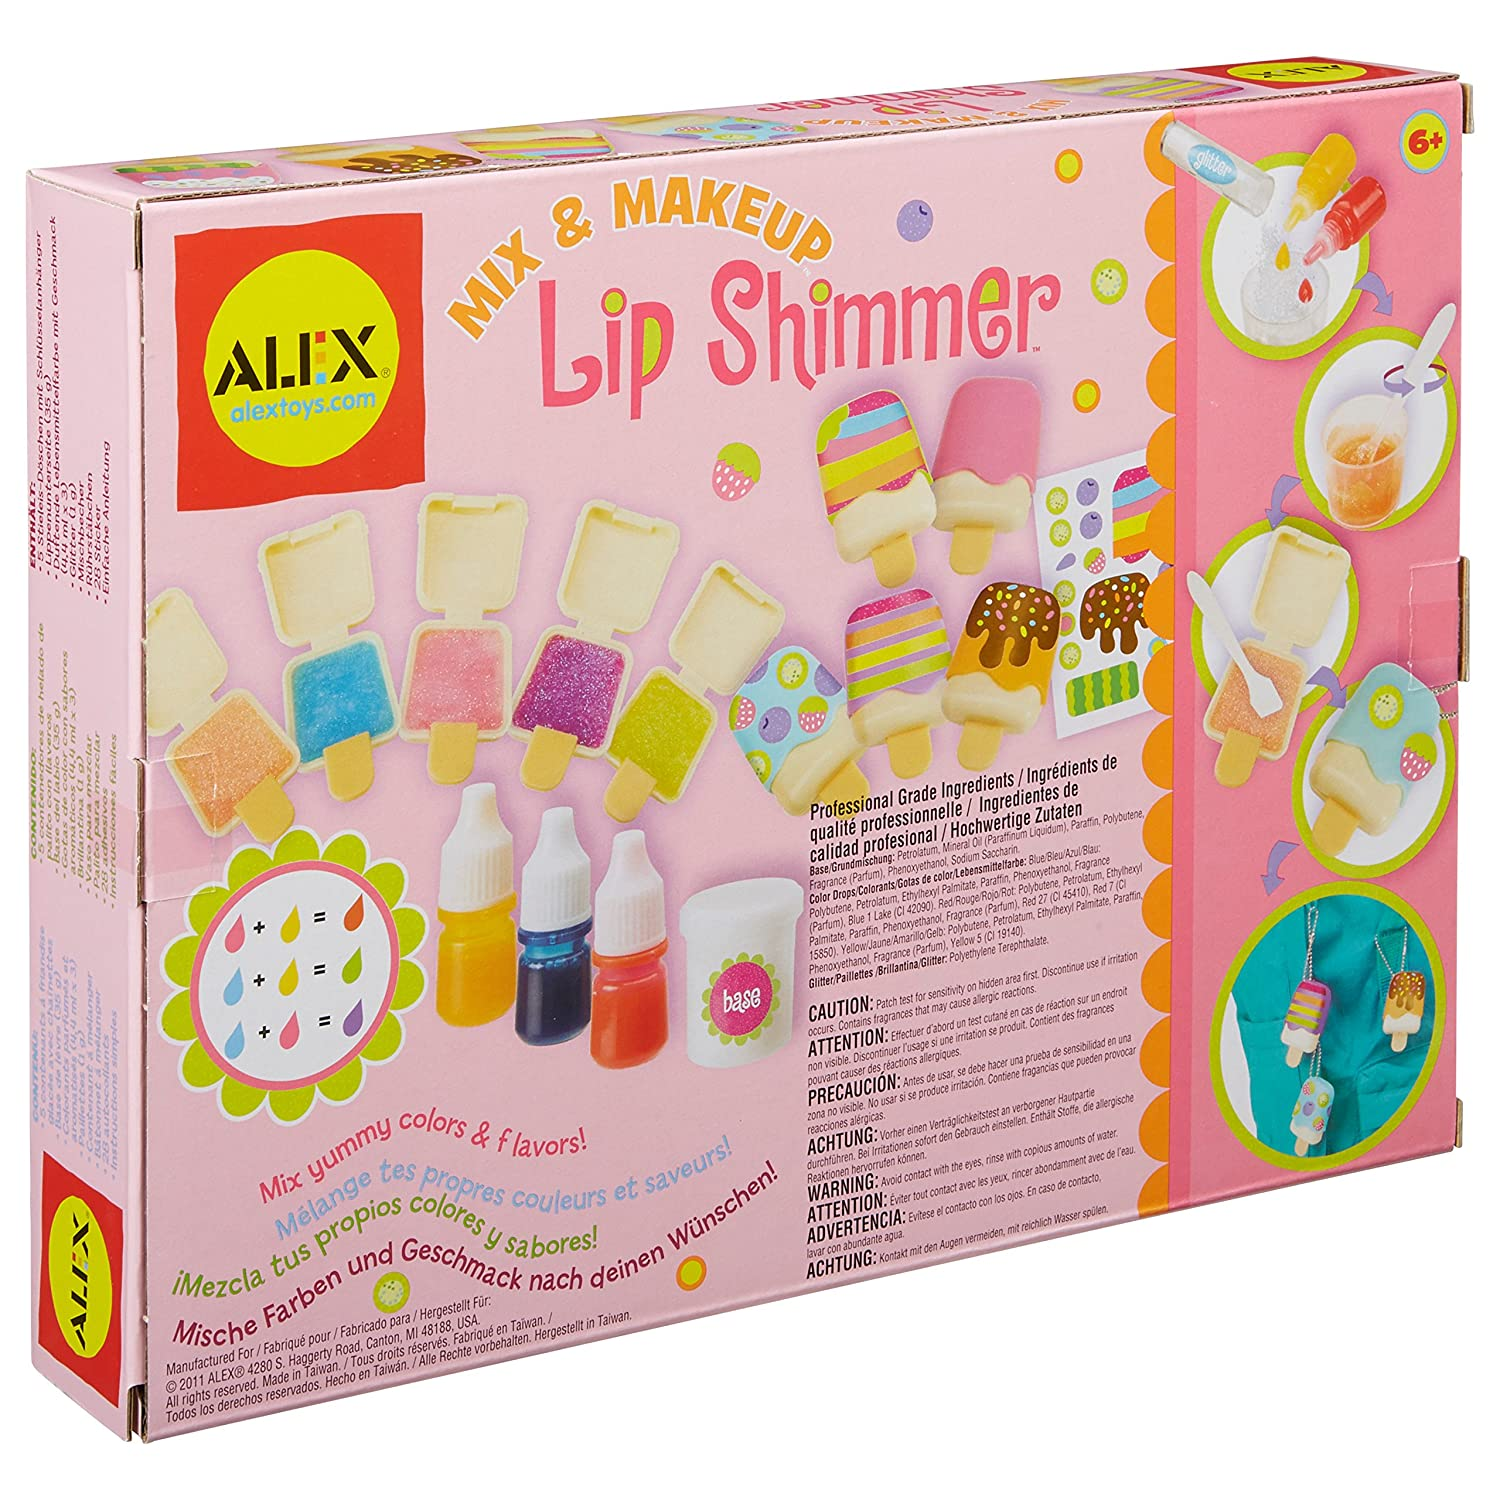 Amazon ALEX Spa Fun Mix and Make Up Lip Shimmer Toys & Games